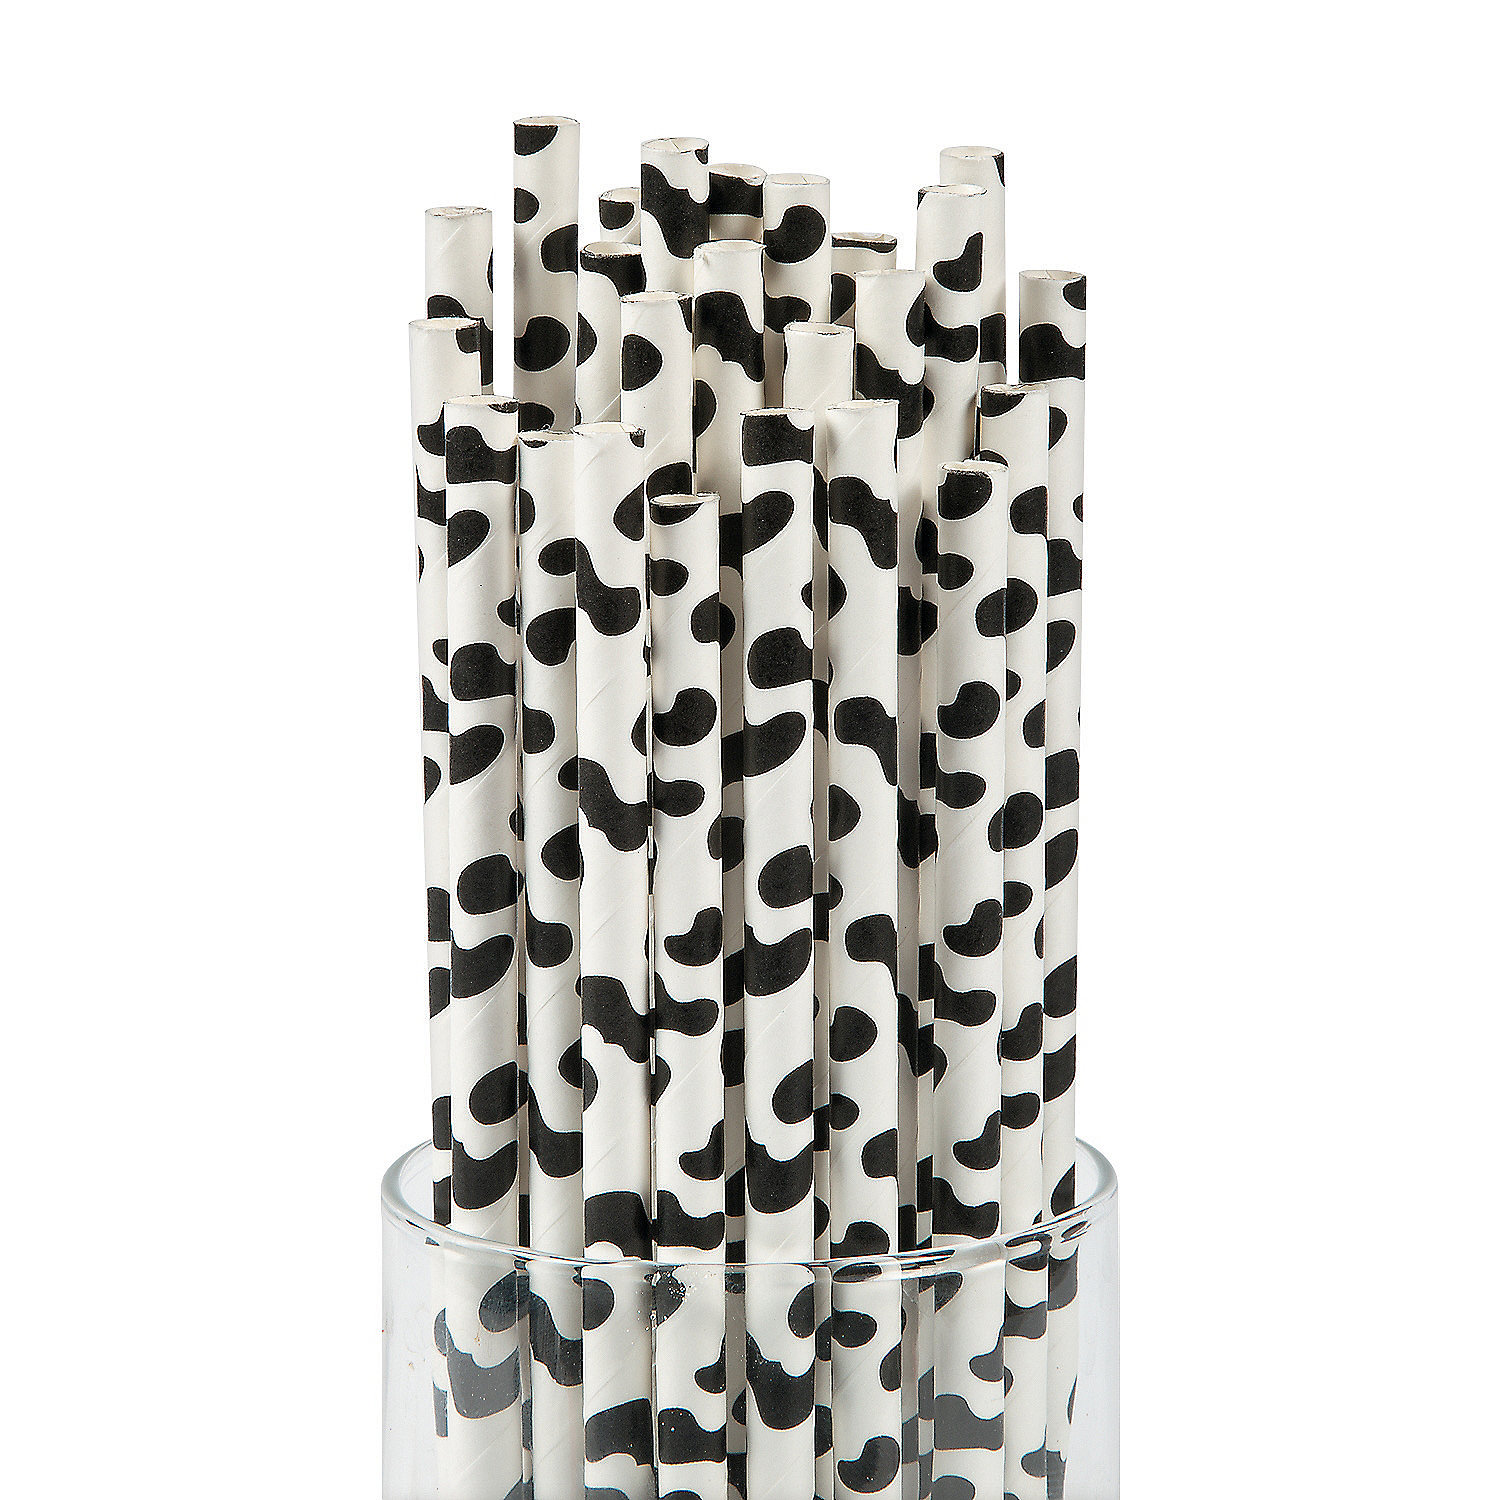 IN-13706180 Cow Print Paper Straws 24 Piece(s)